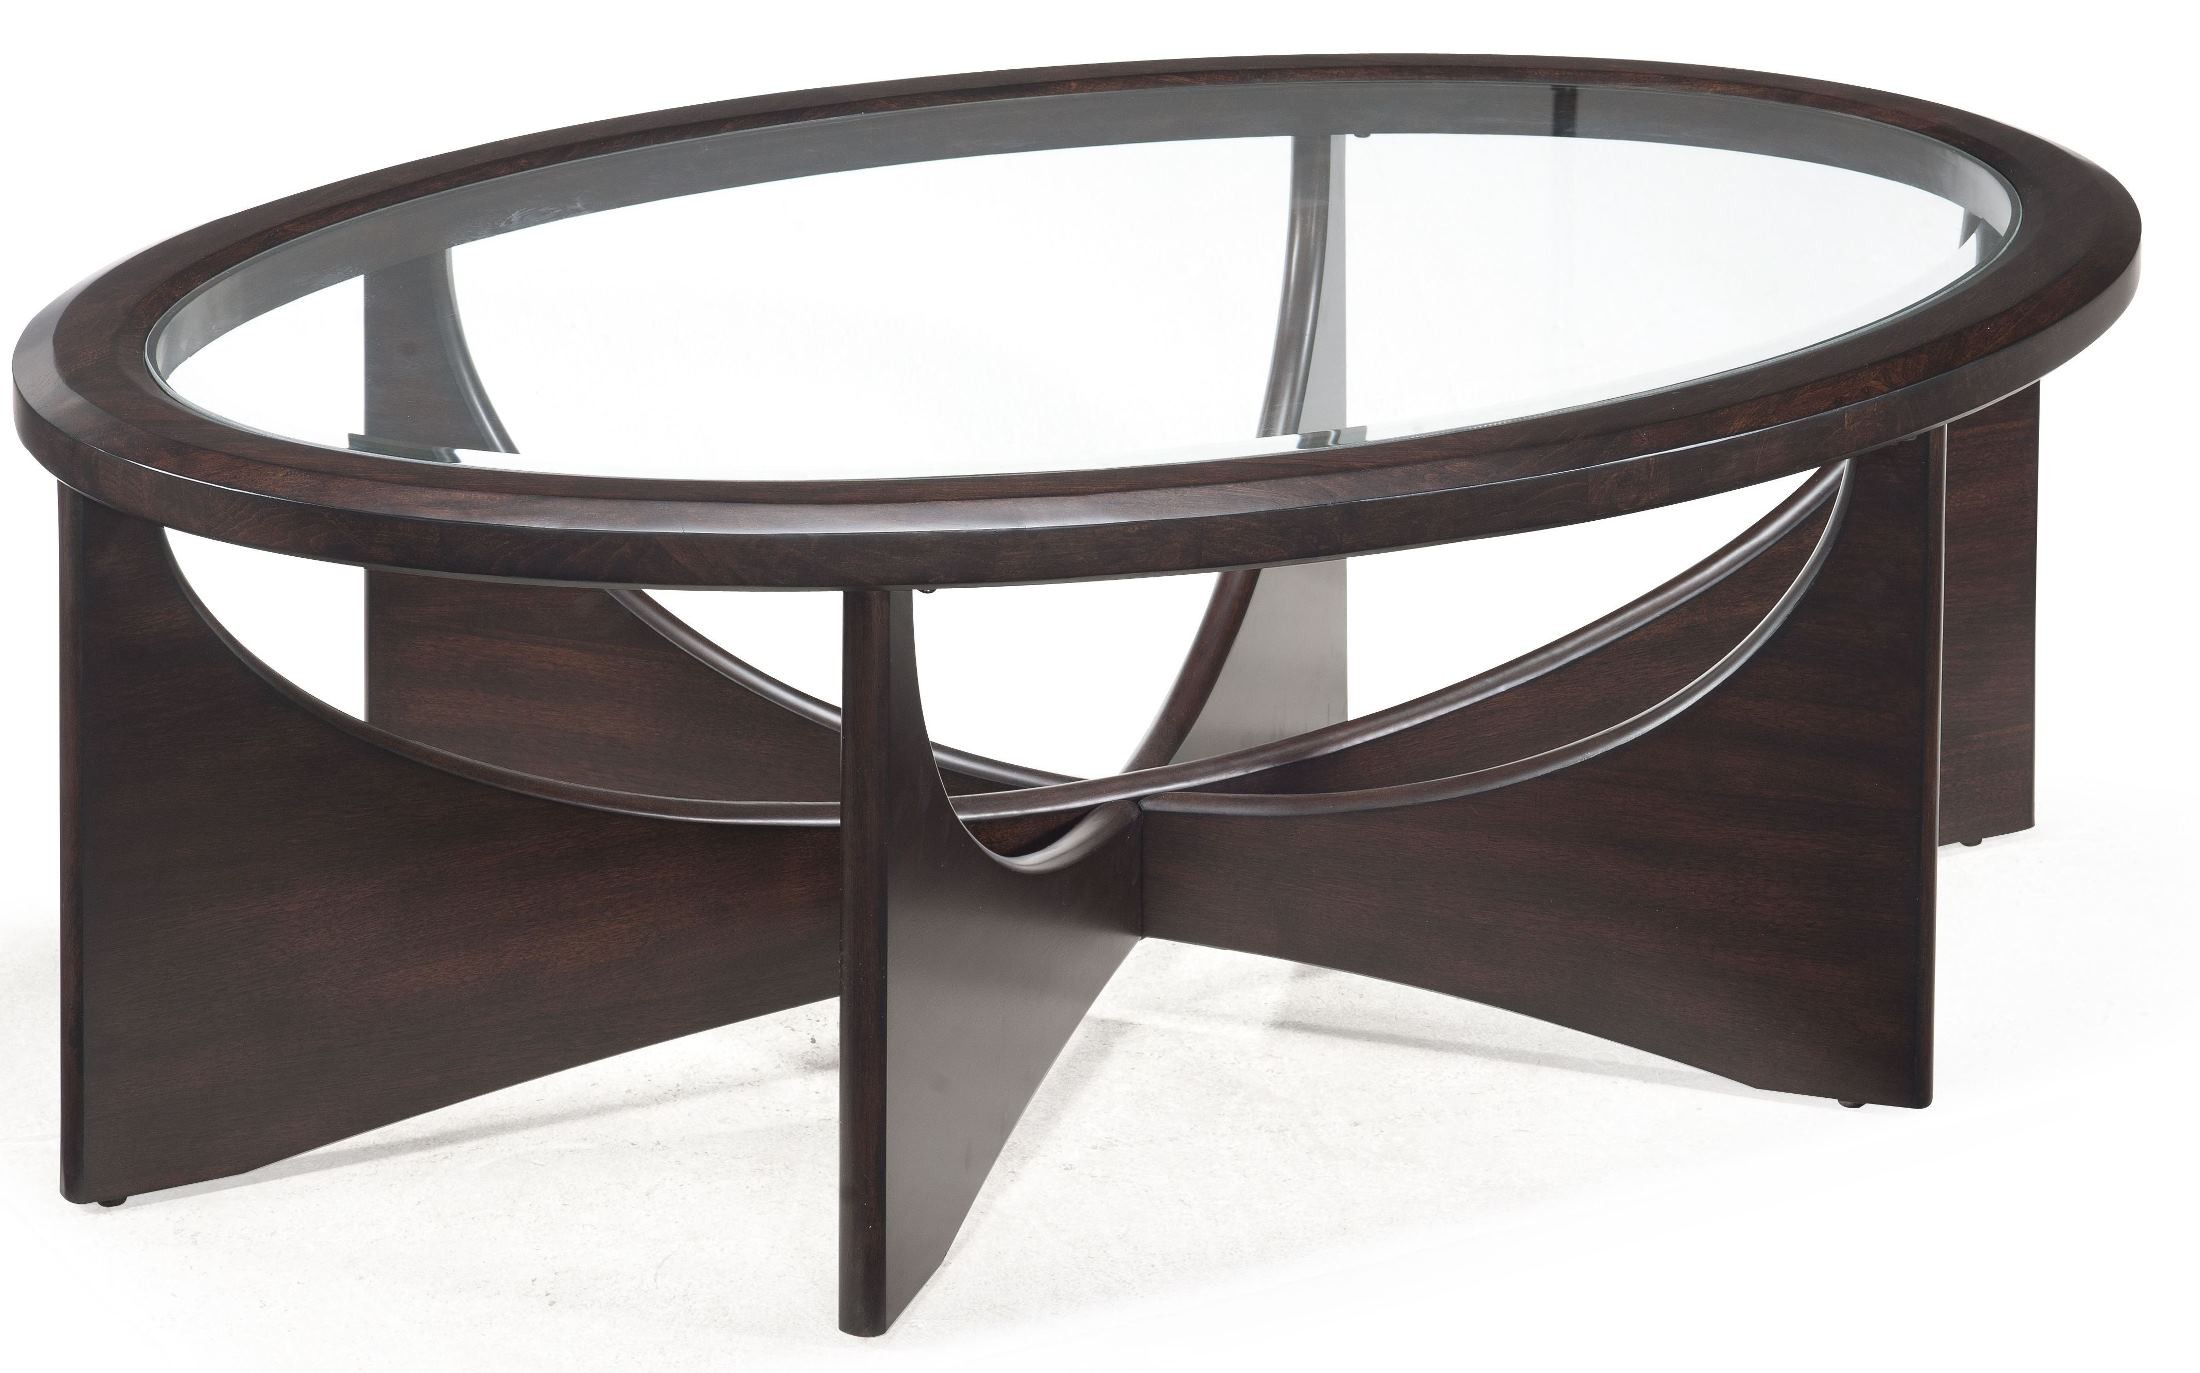 Okani oval cocktail table t2361 47 magnussen for Cocktail table 47